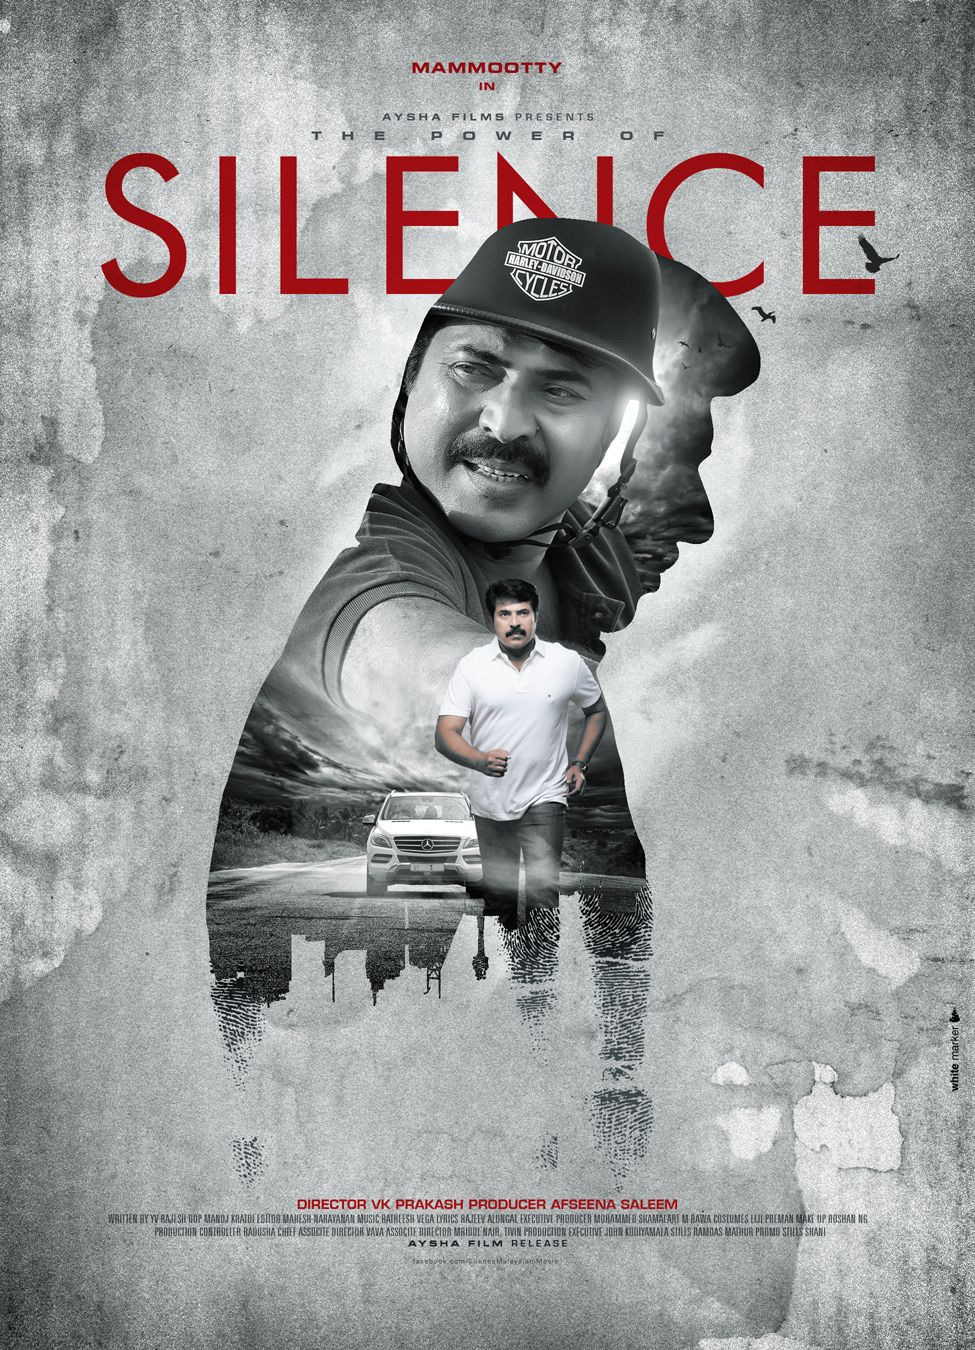 silence movie poster design by white marker movie poster